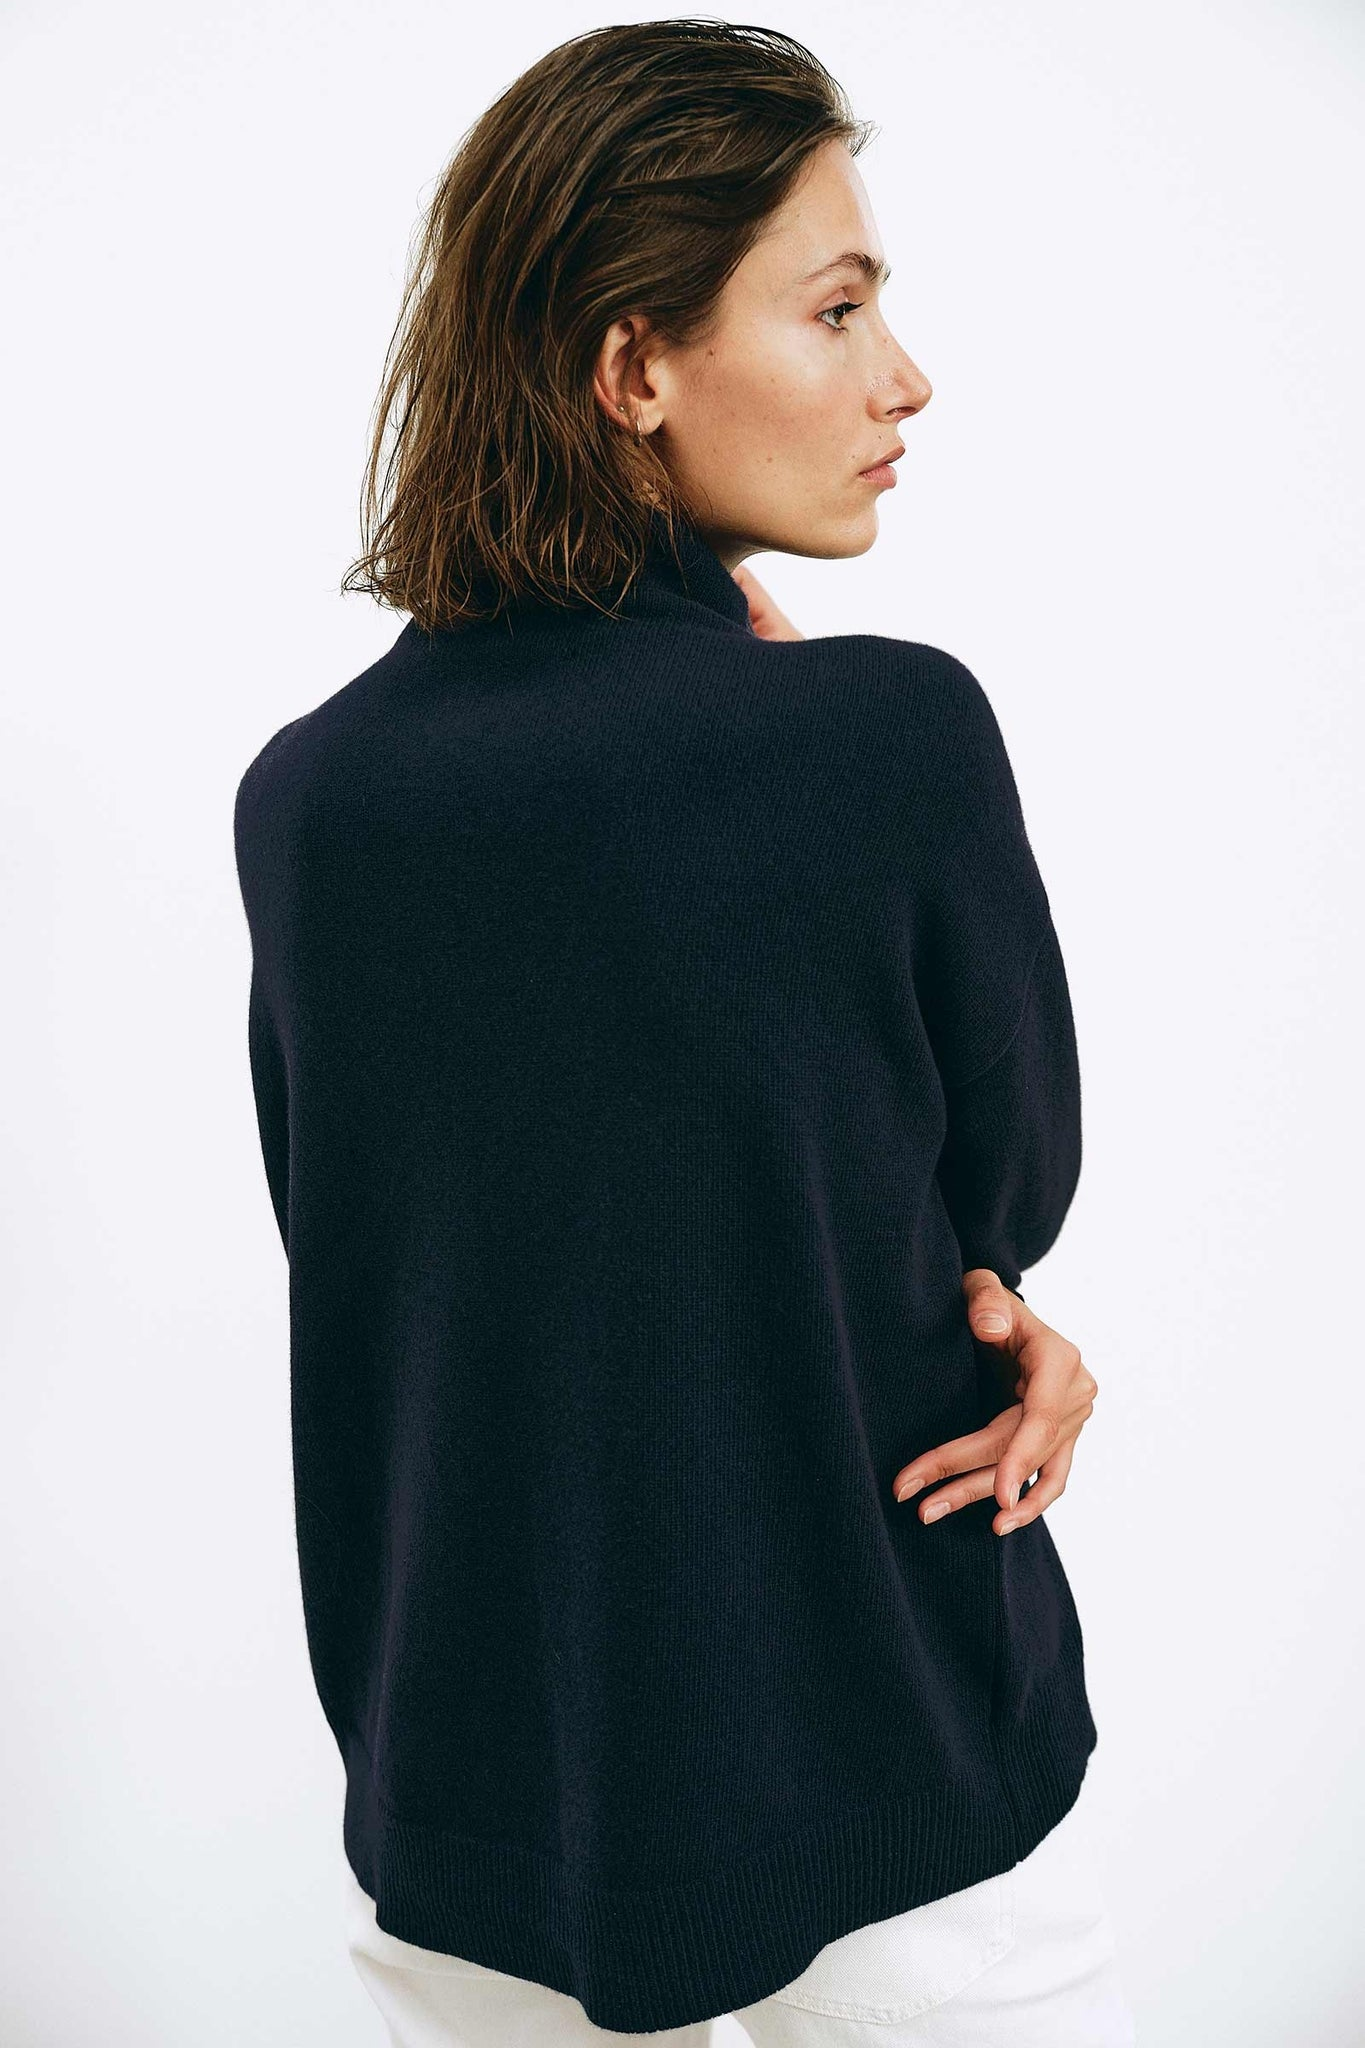 Luna Navy Sweater - Les Goodies